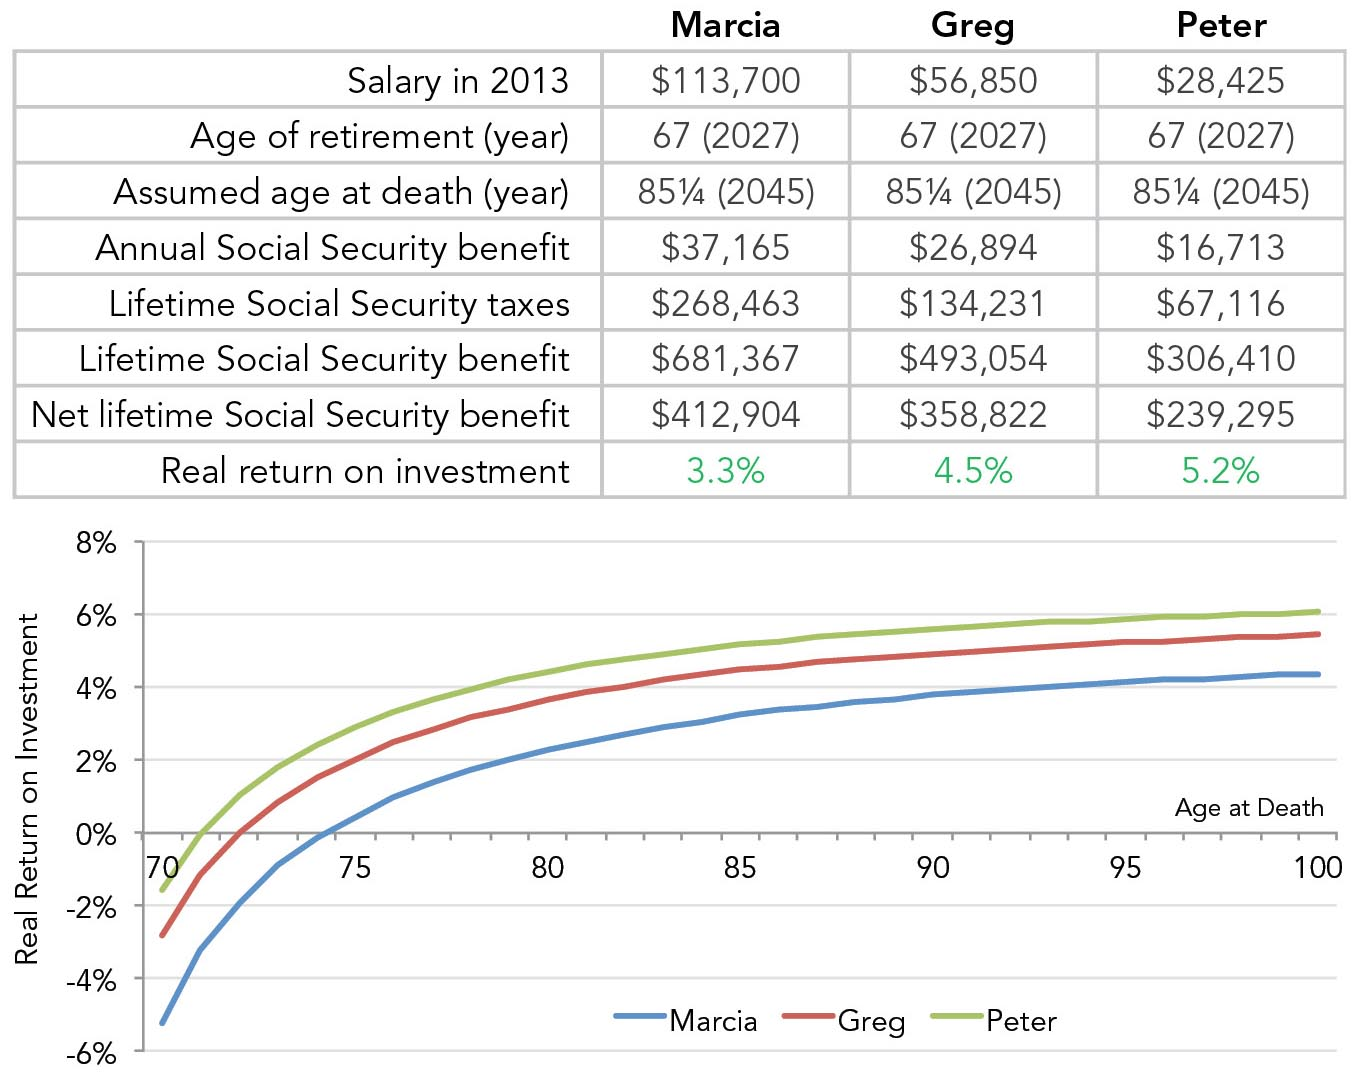 Scenario 1: Employee only, same retirement ages